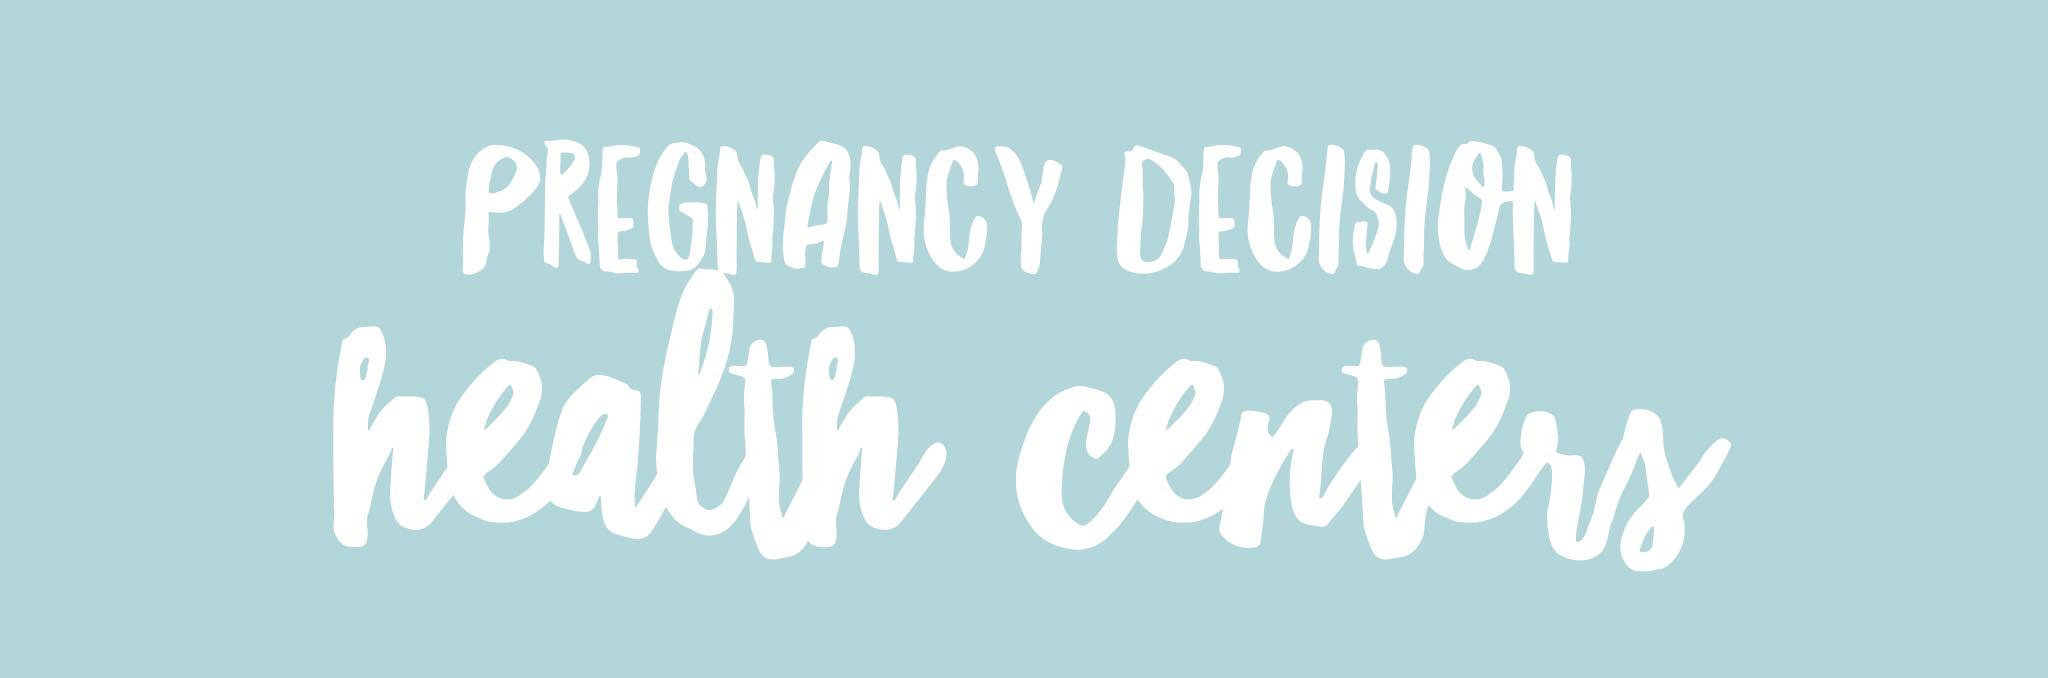 Pregnancy Decision Health Centers